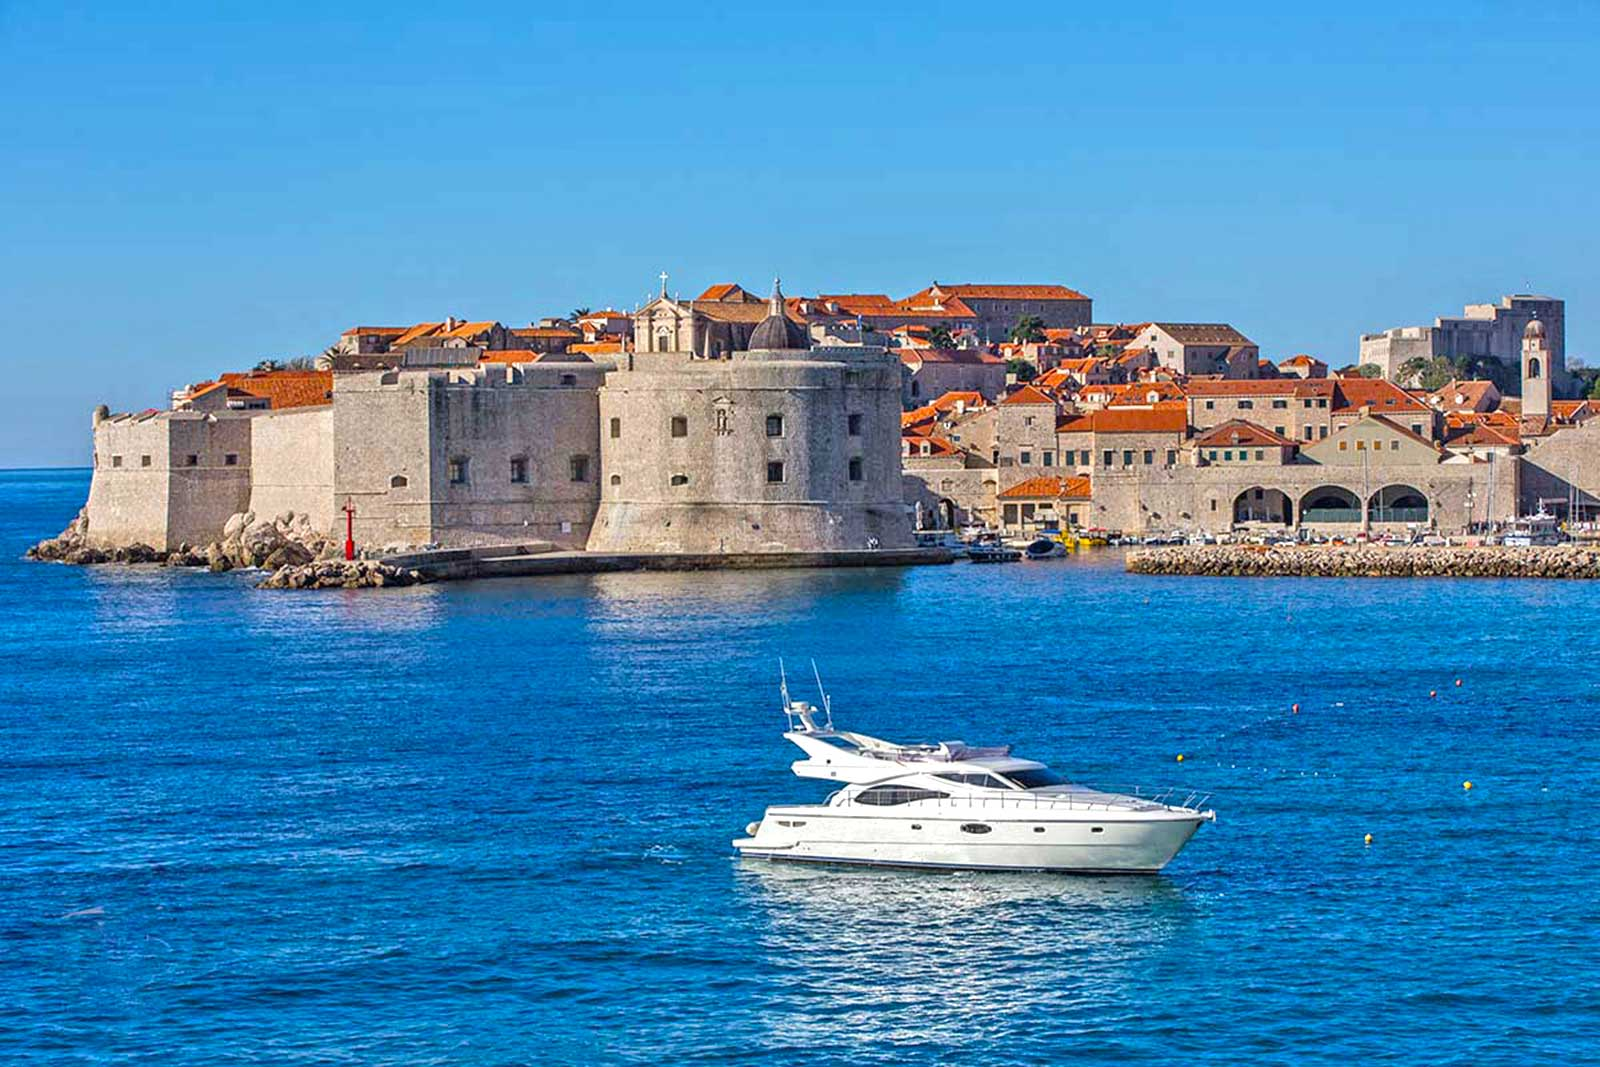 -images-excursions-elaphite-islands-speed-boat-excursion--a-dubrovnik-boats-02-ferretti-591-dubrovnik-old-town.jpg